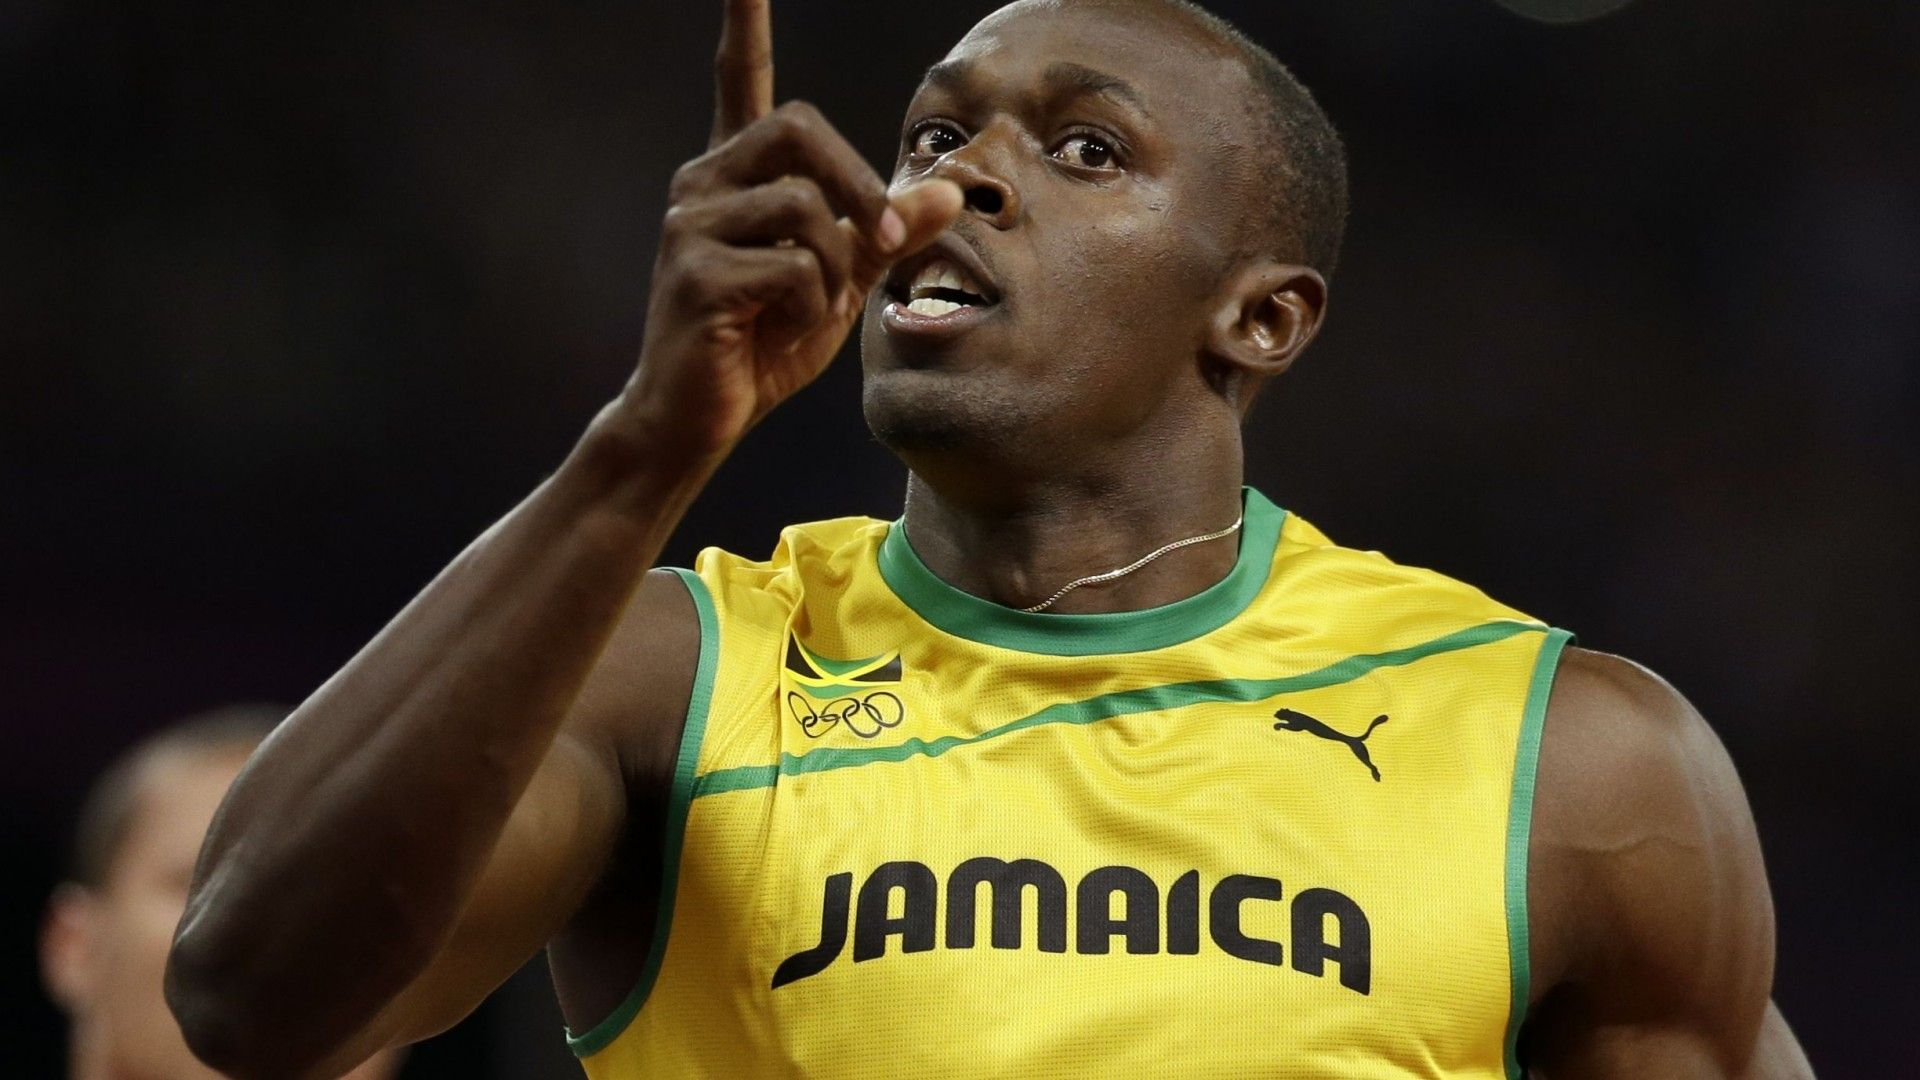 Usain Bolt Wallpapers 2015 Olympics 1920x1080